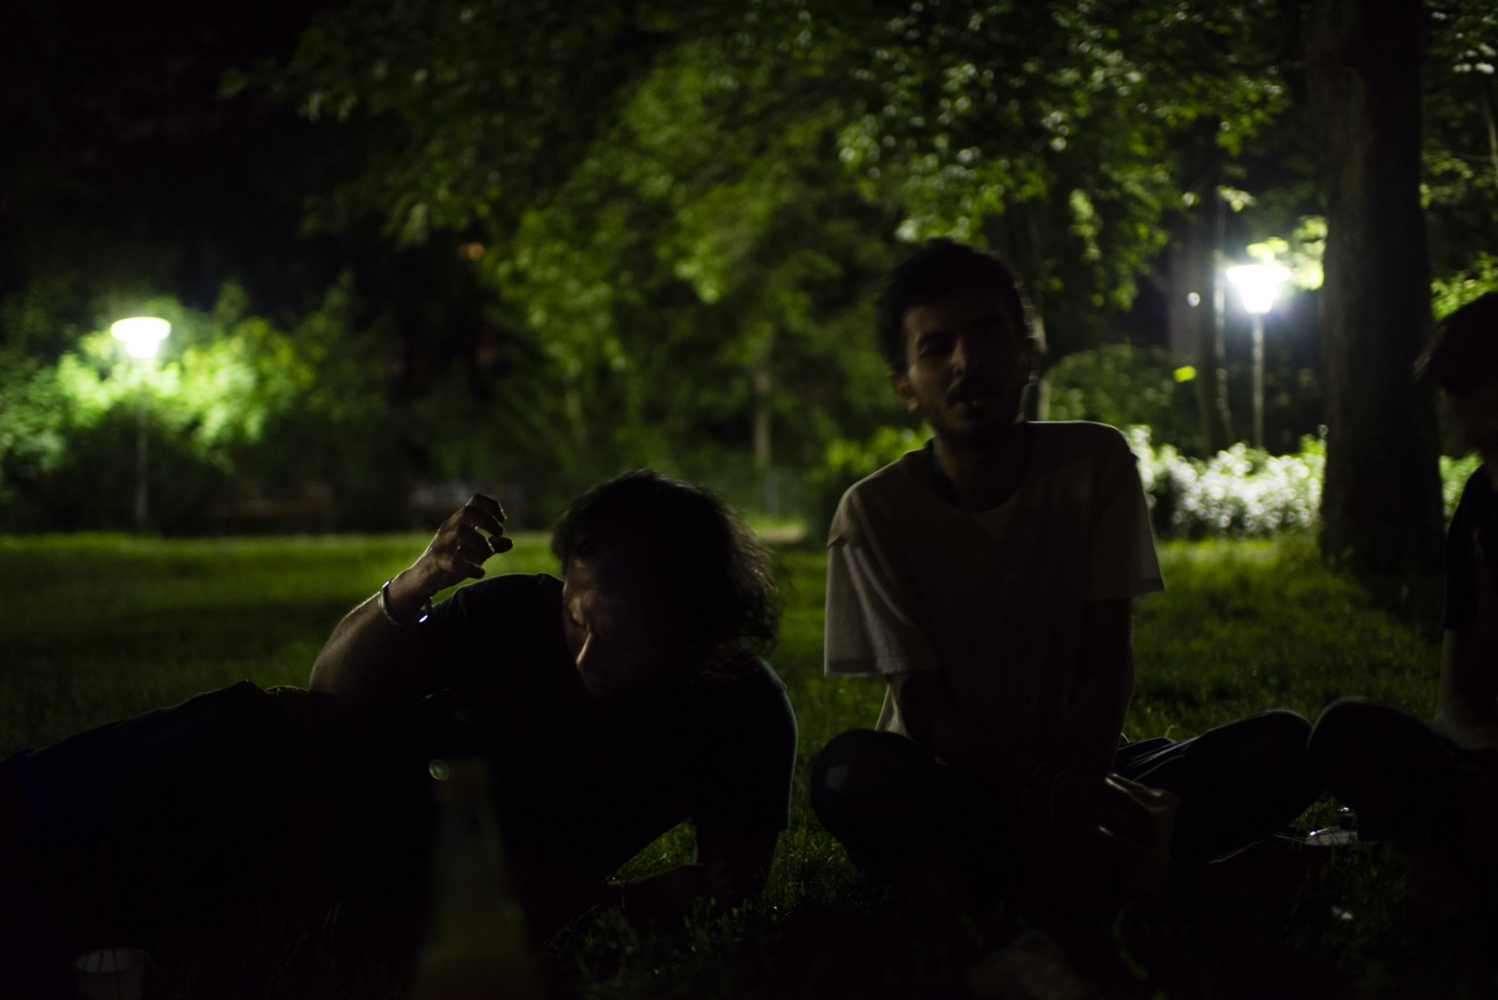 BERLIN | GERMANY | 2016-06-04 | Mohammed and his Syrian friends, mainly musicians or activists who are now in exile as refugees in Germany, come together late at night, singing revolutionary songs at a park.